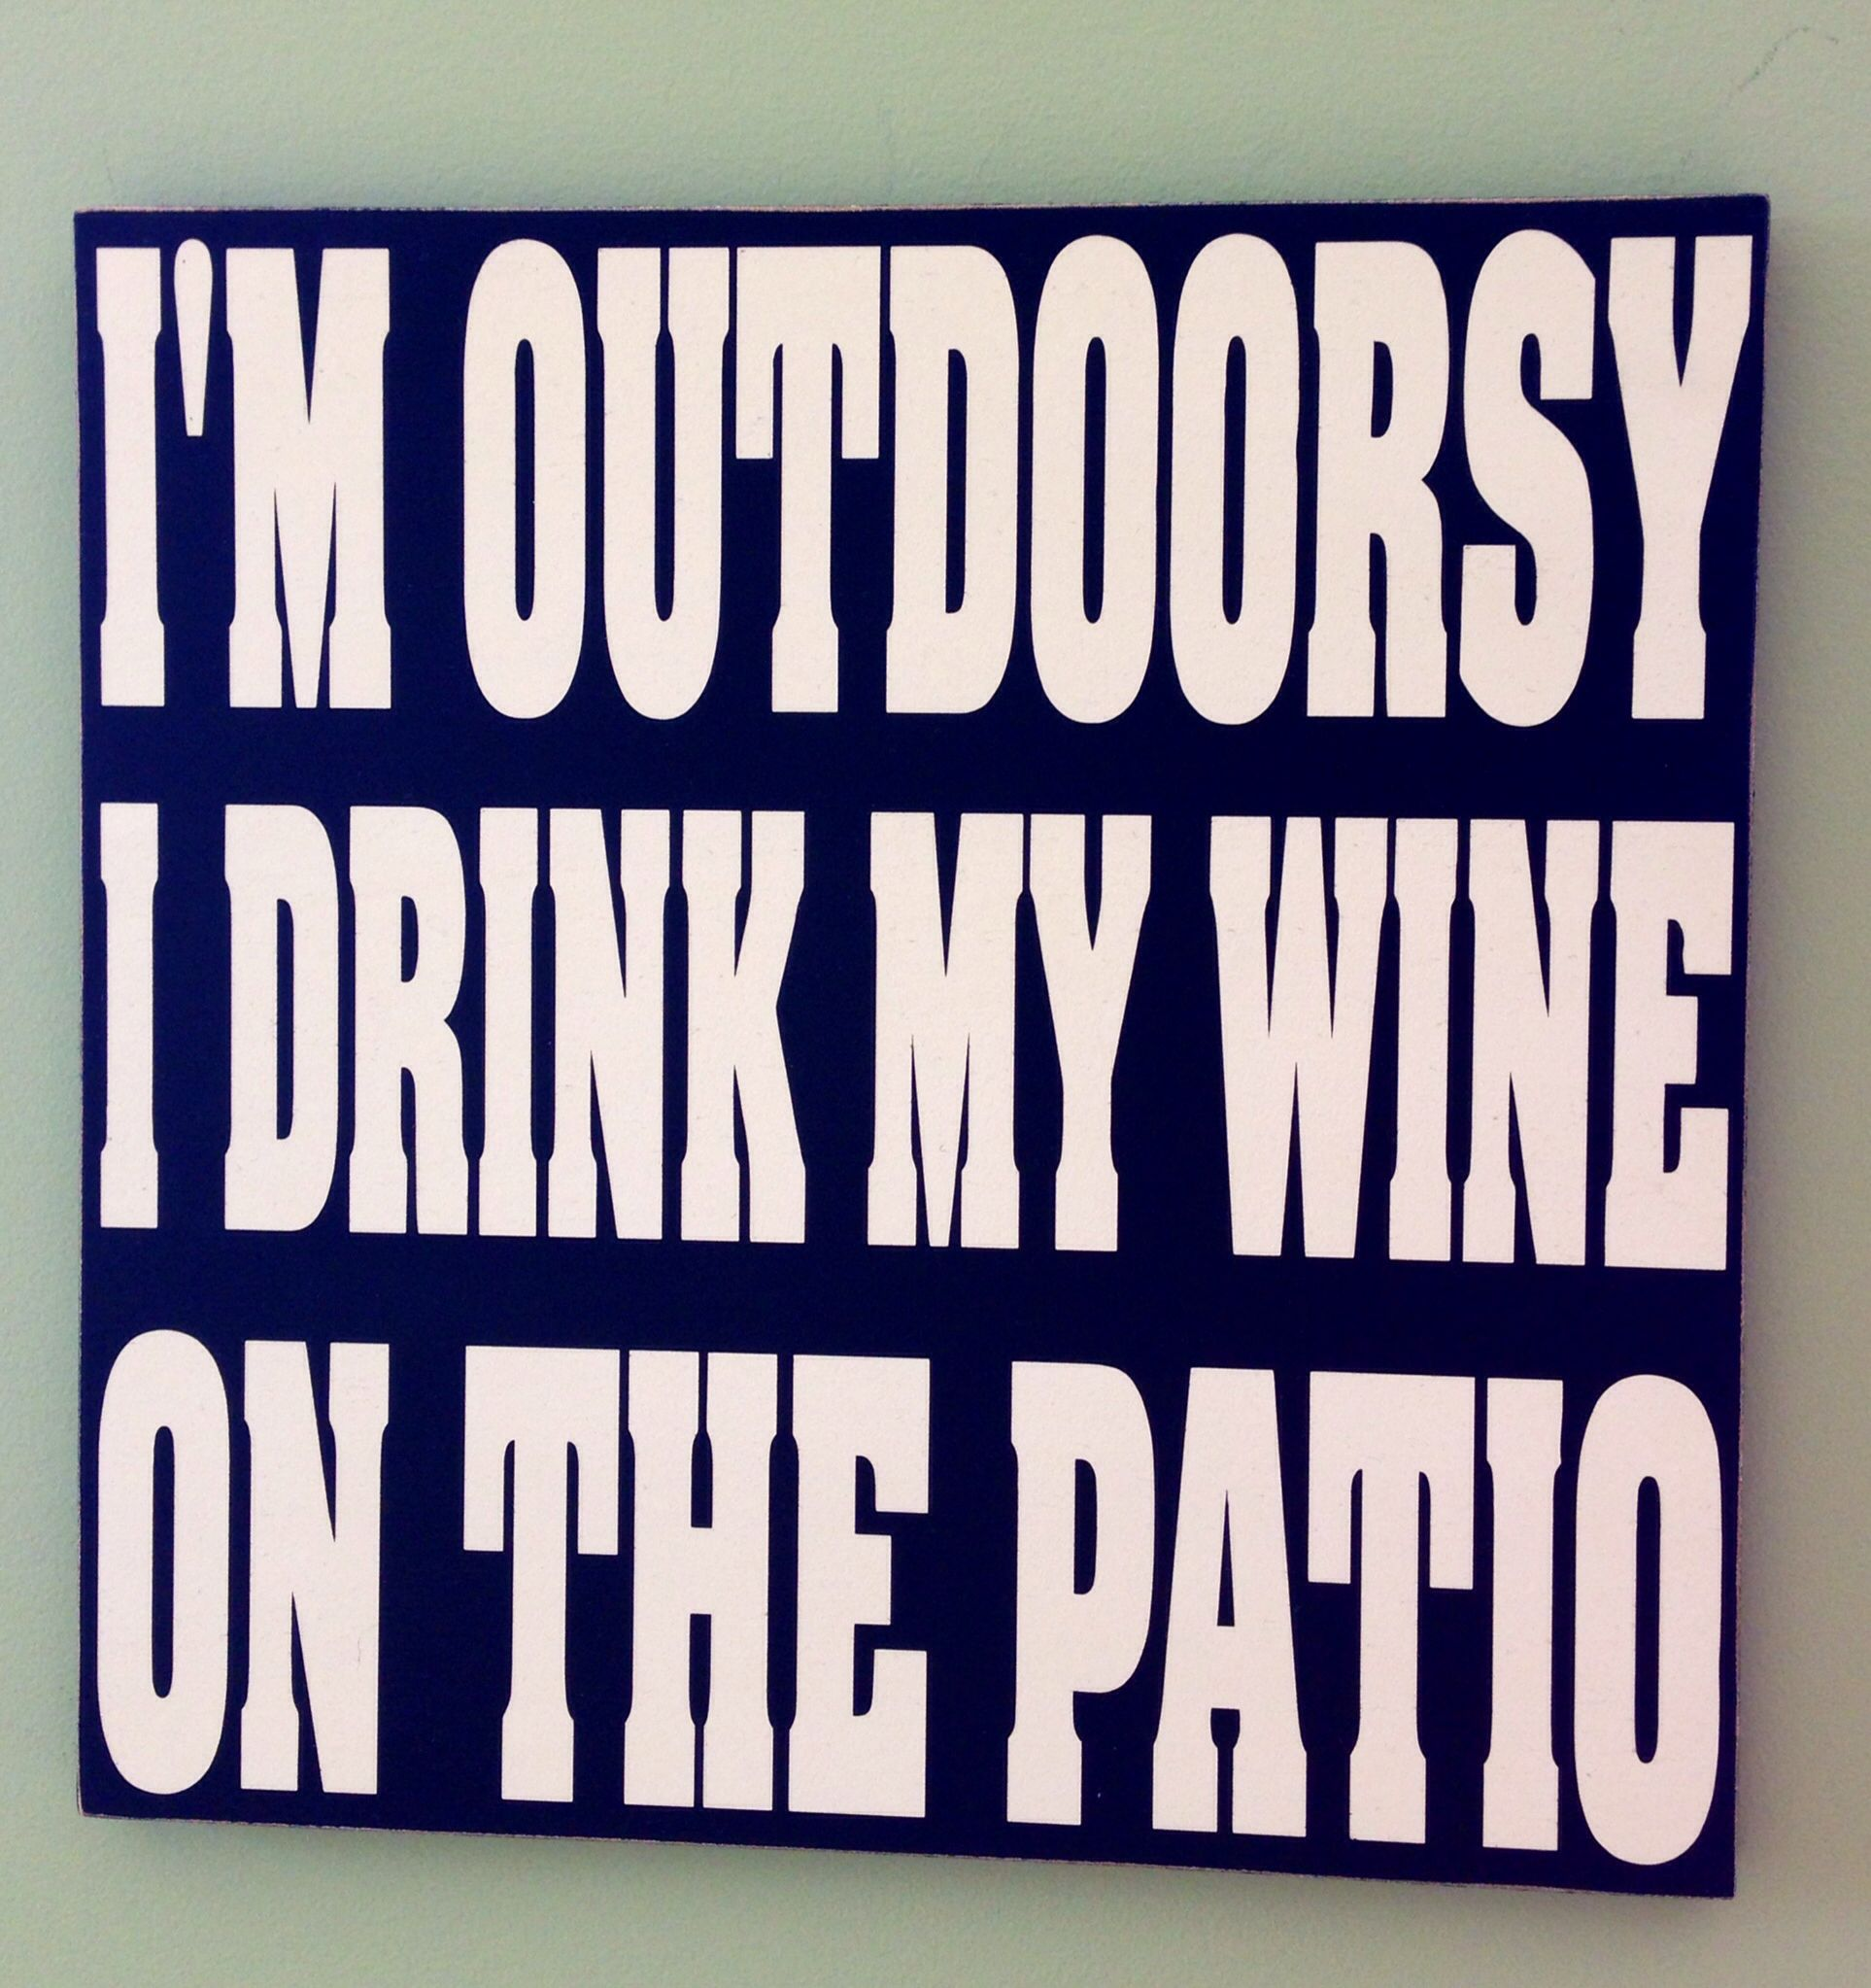 We Can Drink Our Wine On The Patio At Www Portgardnerbaywinery Com